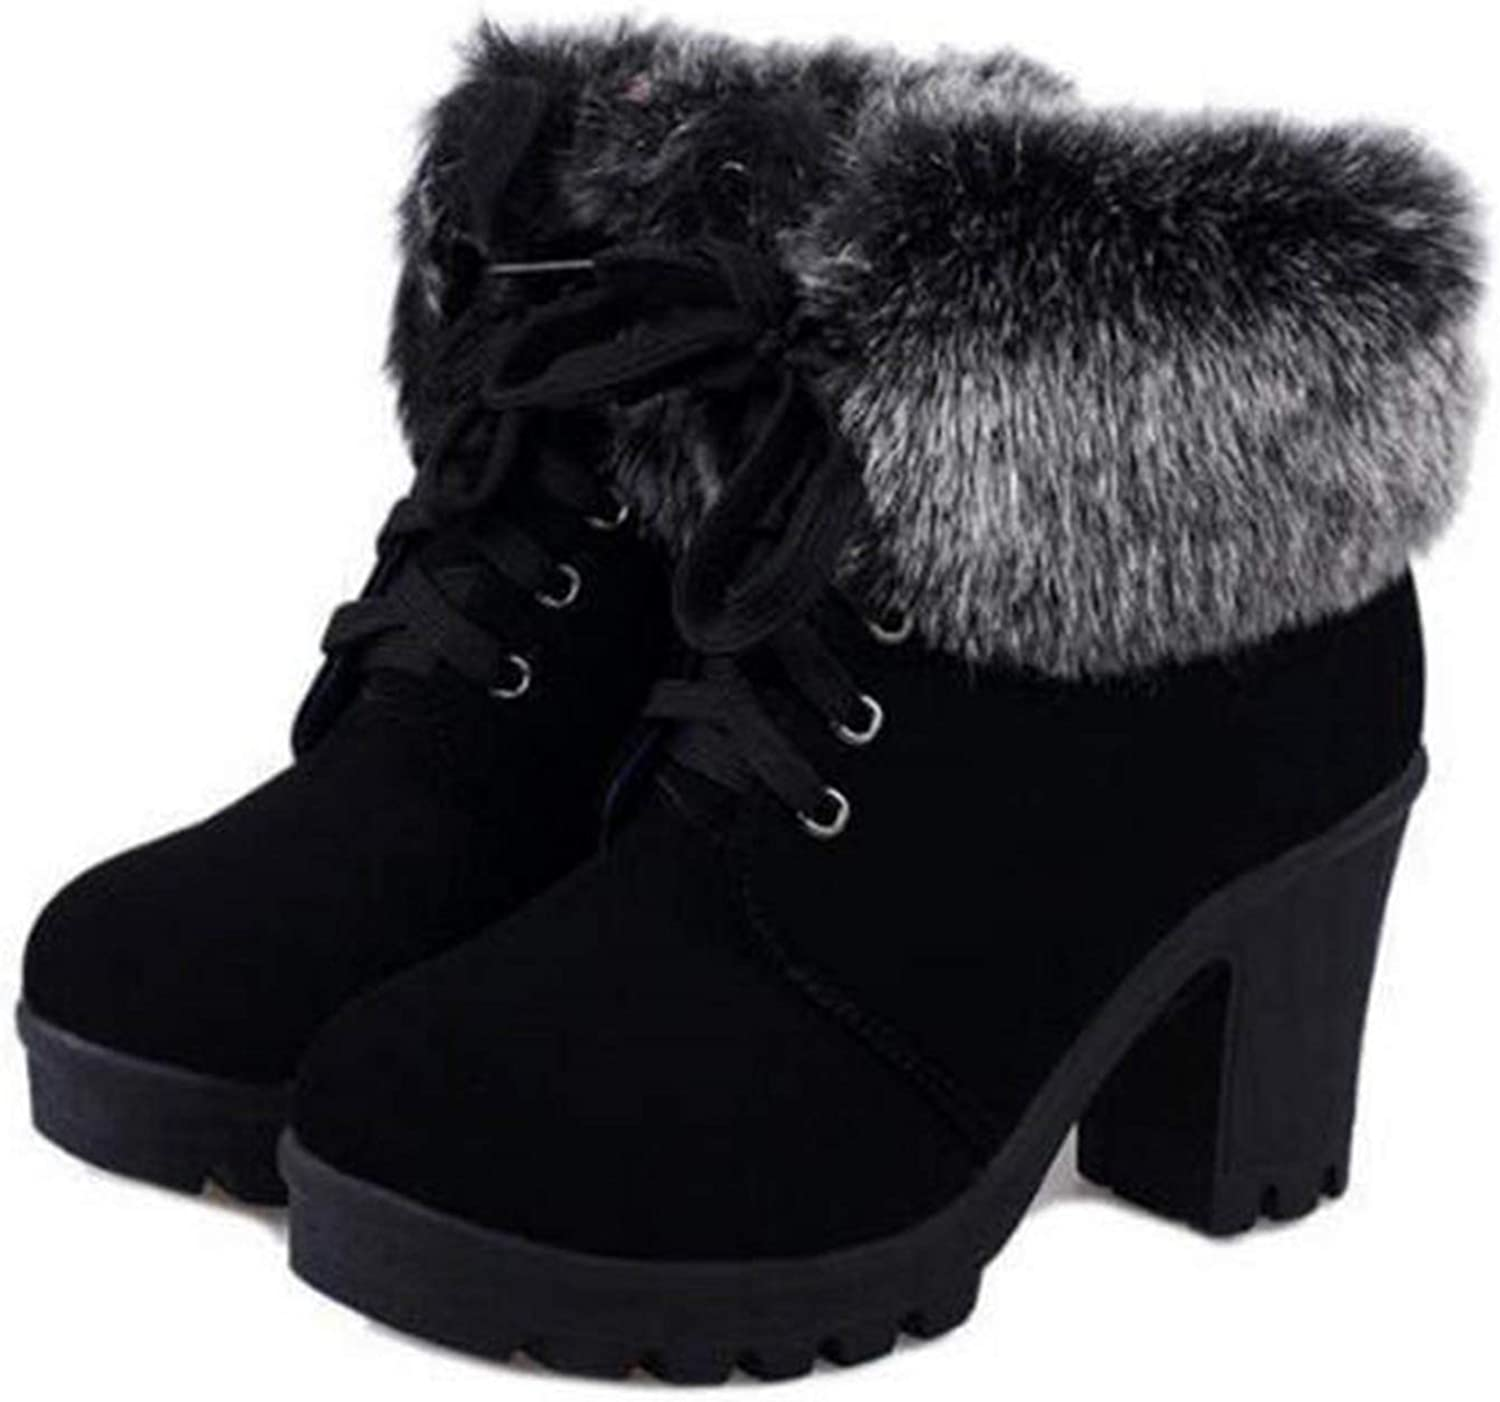 Autumn Winter Ankle Boots Women Fur Cuff Thick Heel Motorcycle Combat Boots WBS226